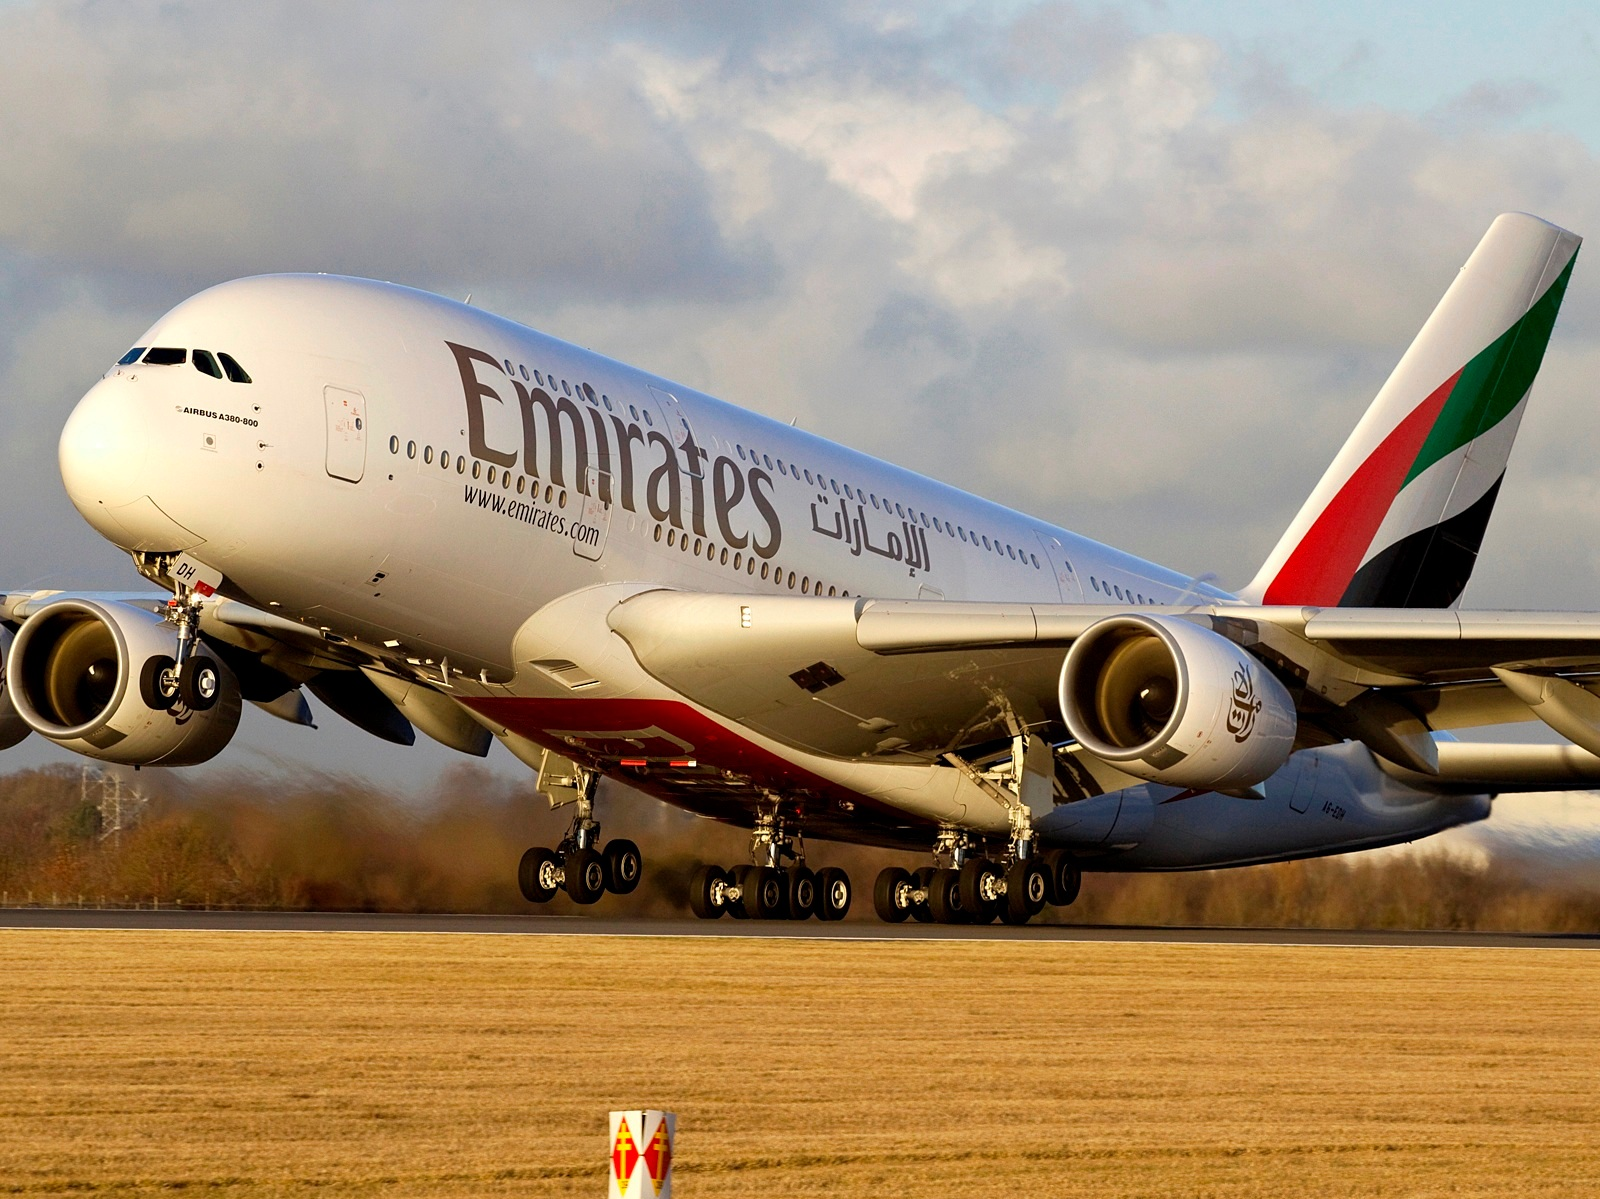 Emirates Airbus A380 800 Sunset Takeoff Aircraft Wallpaper 4021